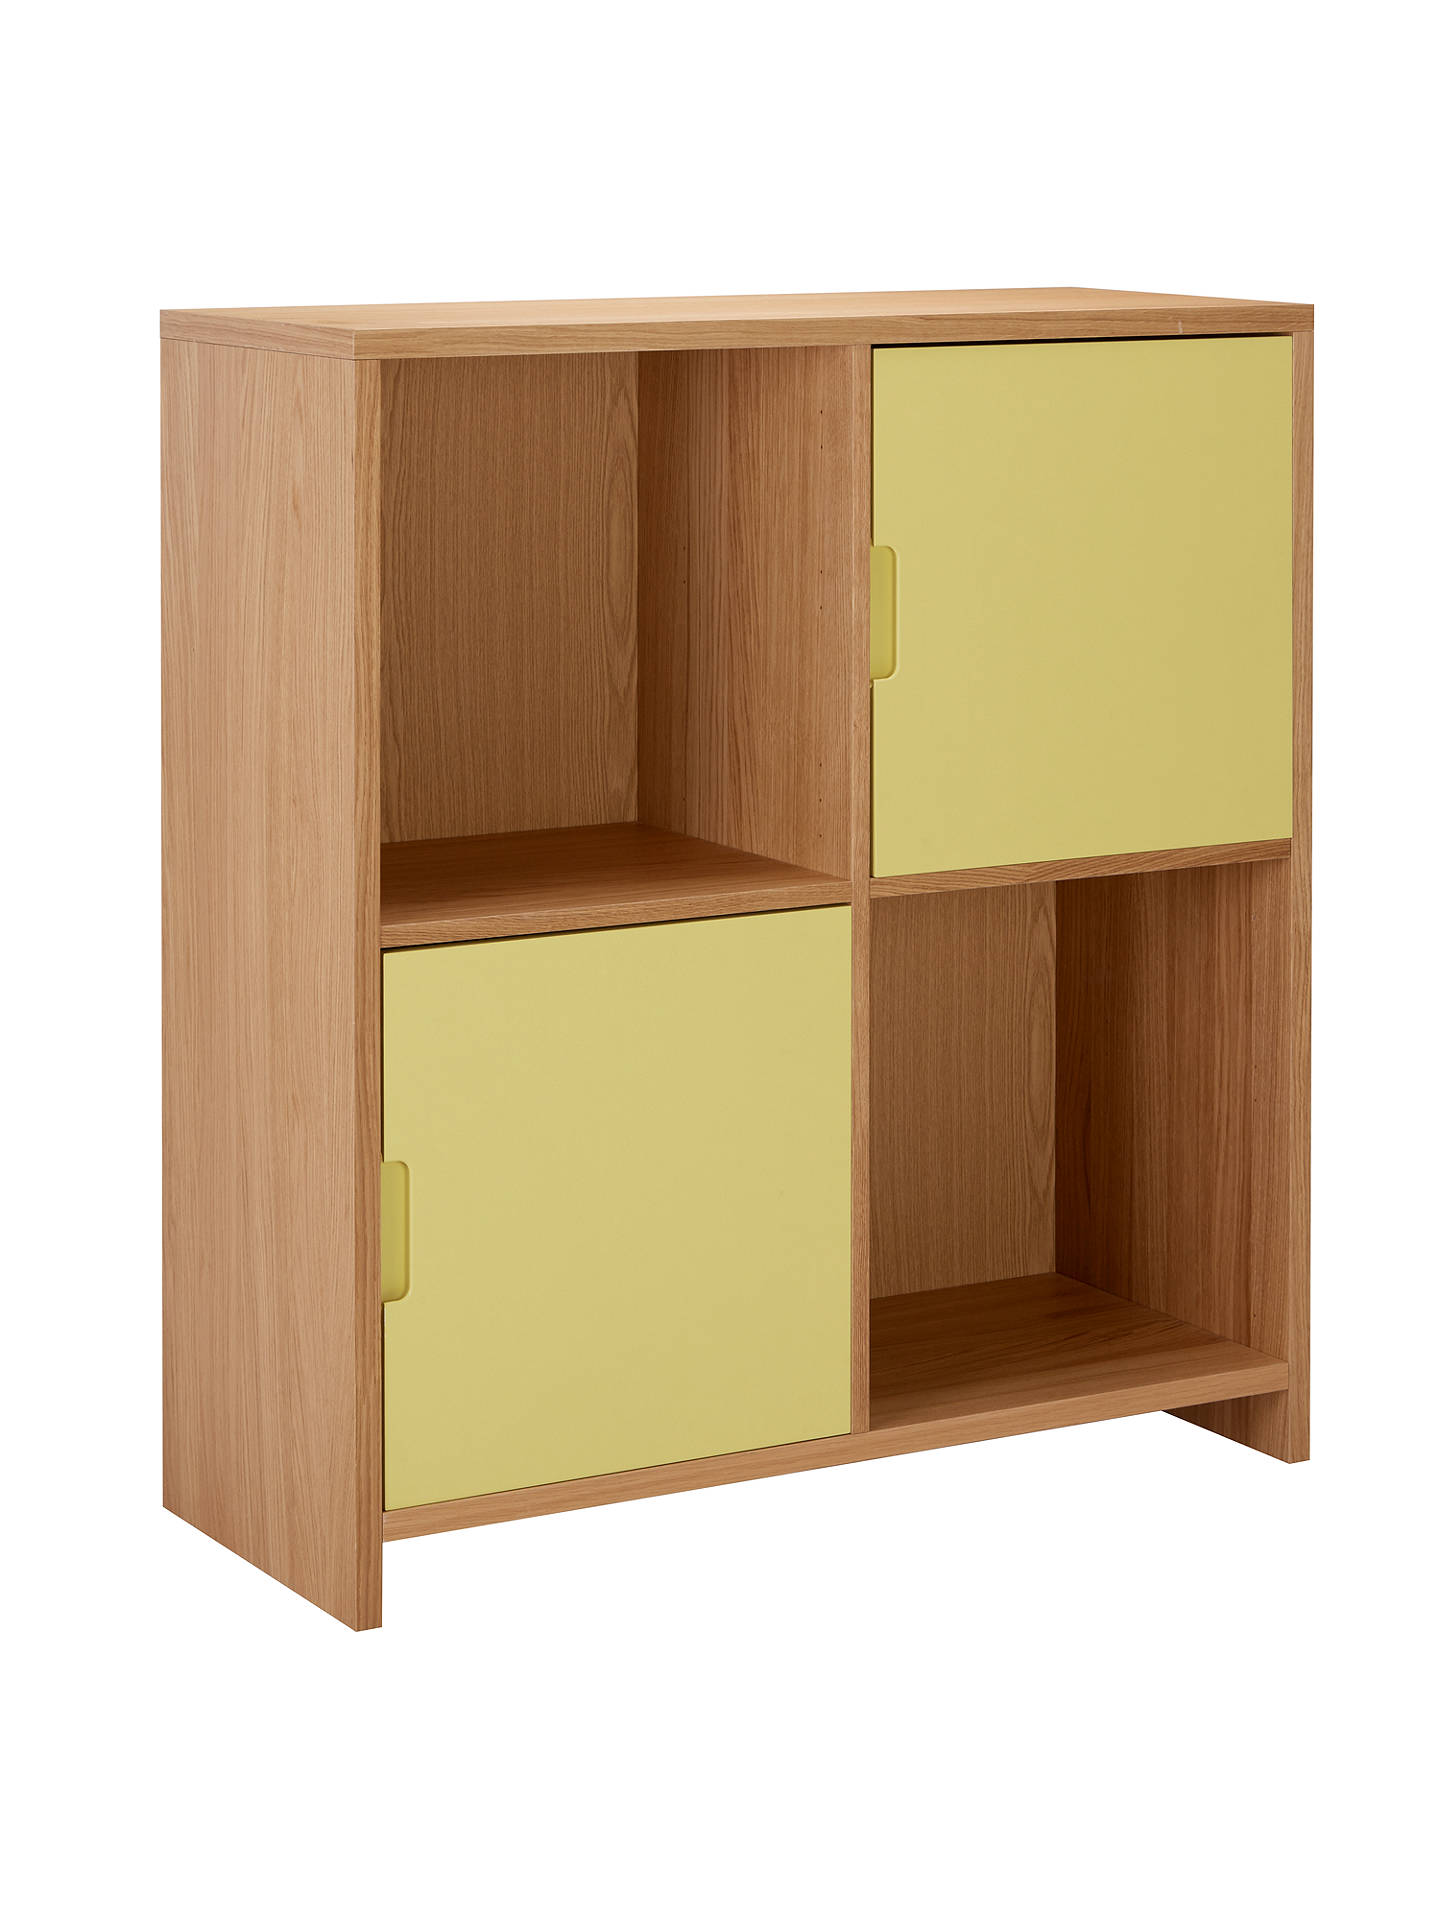 BuyHouse by John Lewis Oxford 2 x 2 Cube Unit with 2 Cupboard Doors Set, Dandelion / Oak Online at johnlewis.com